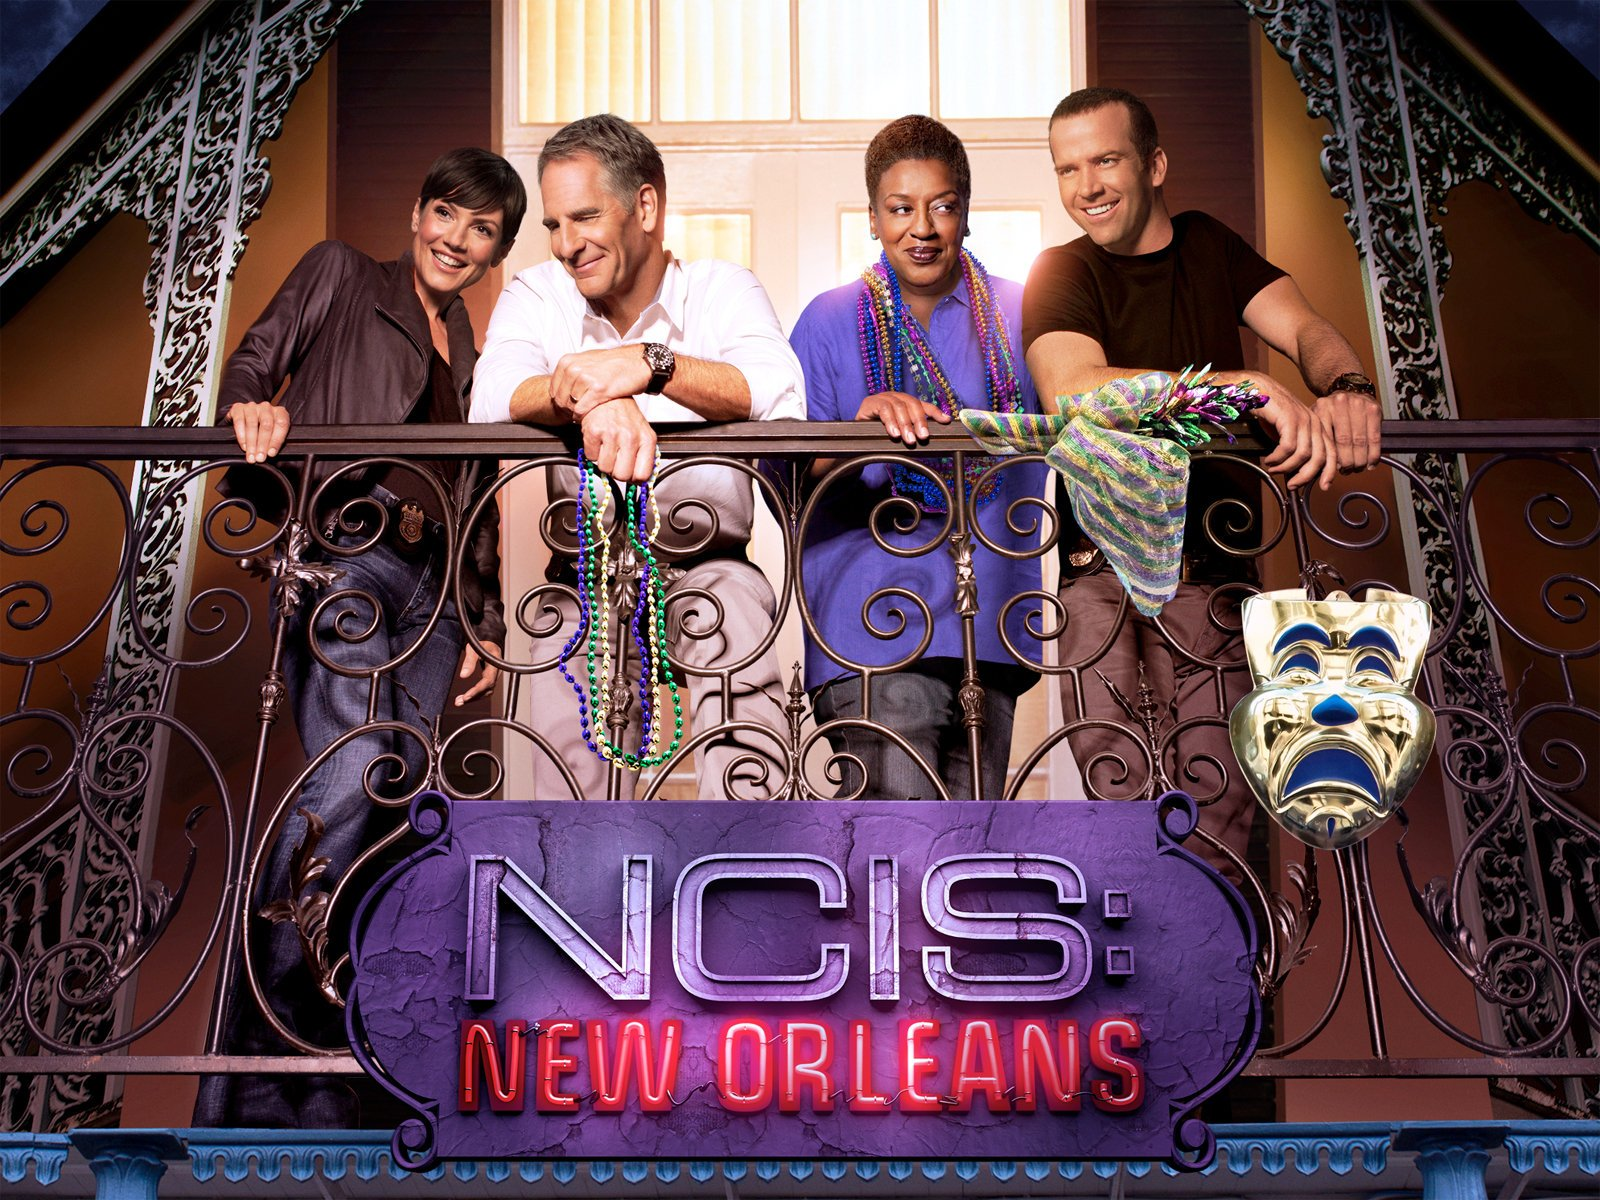 ncis new orleans season 2 episode 13 watch online